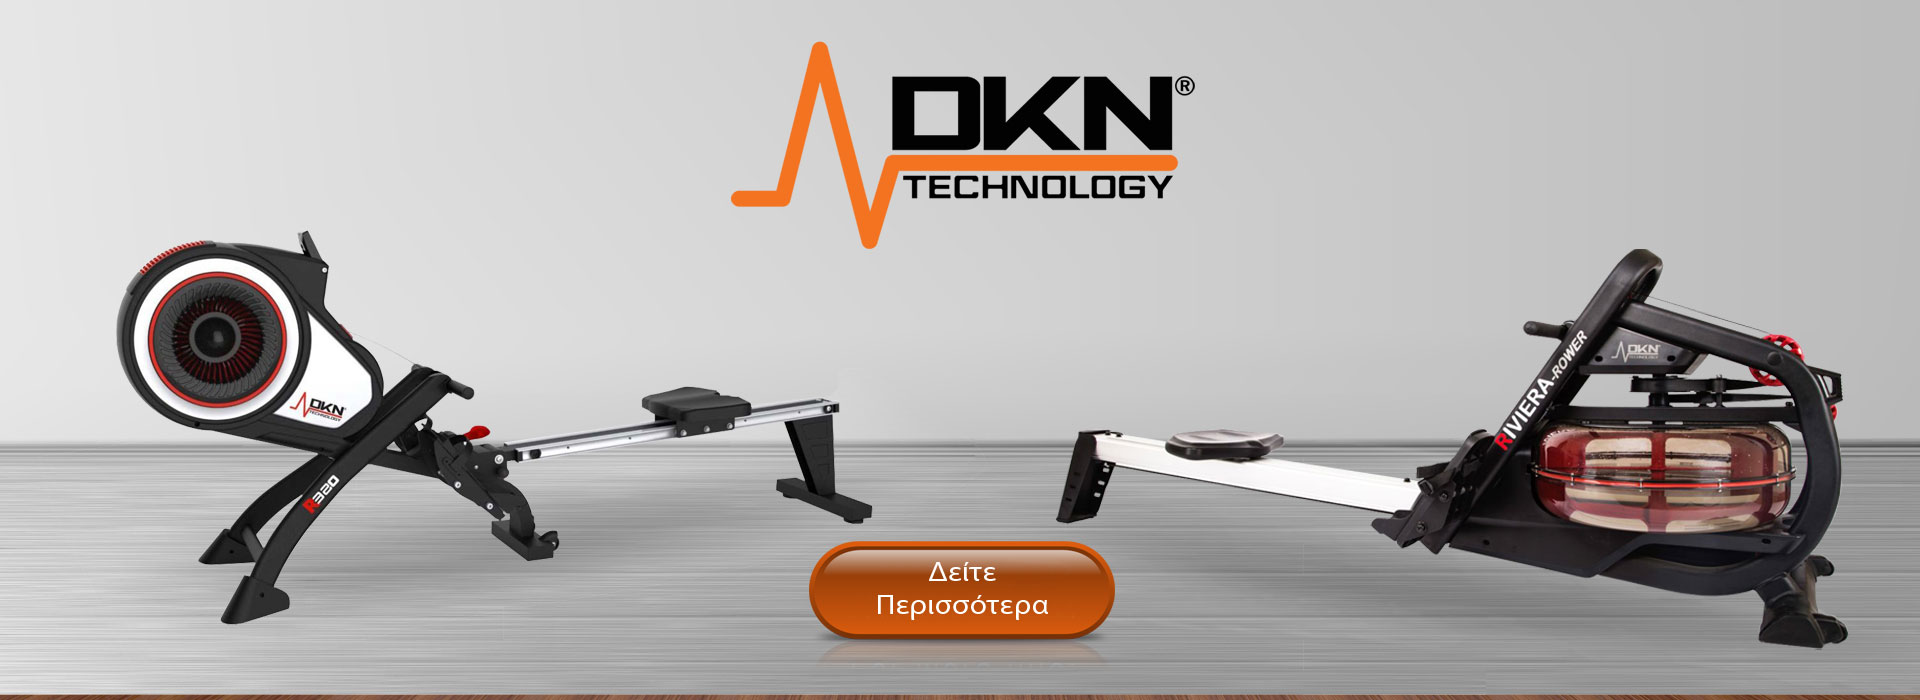 DKN Technology - Rower